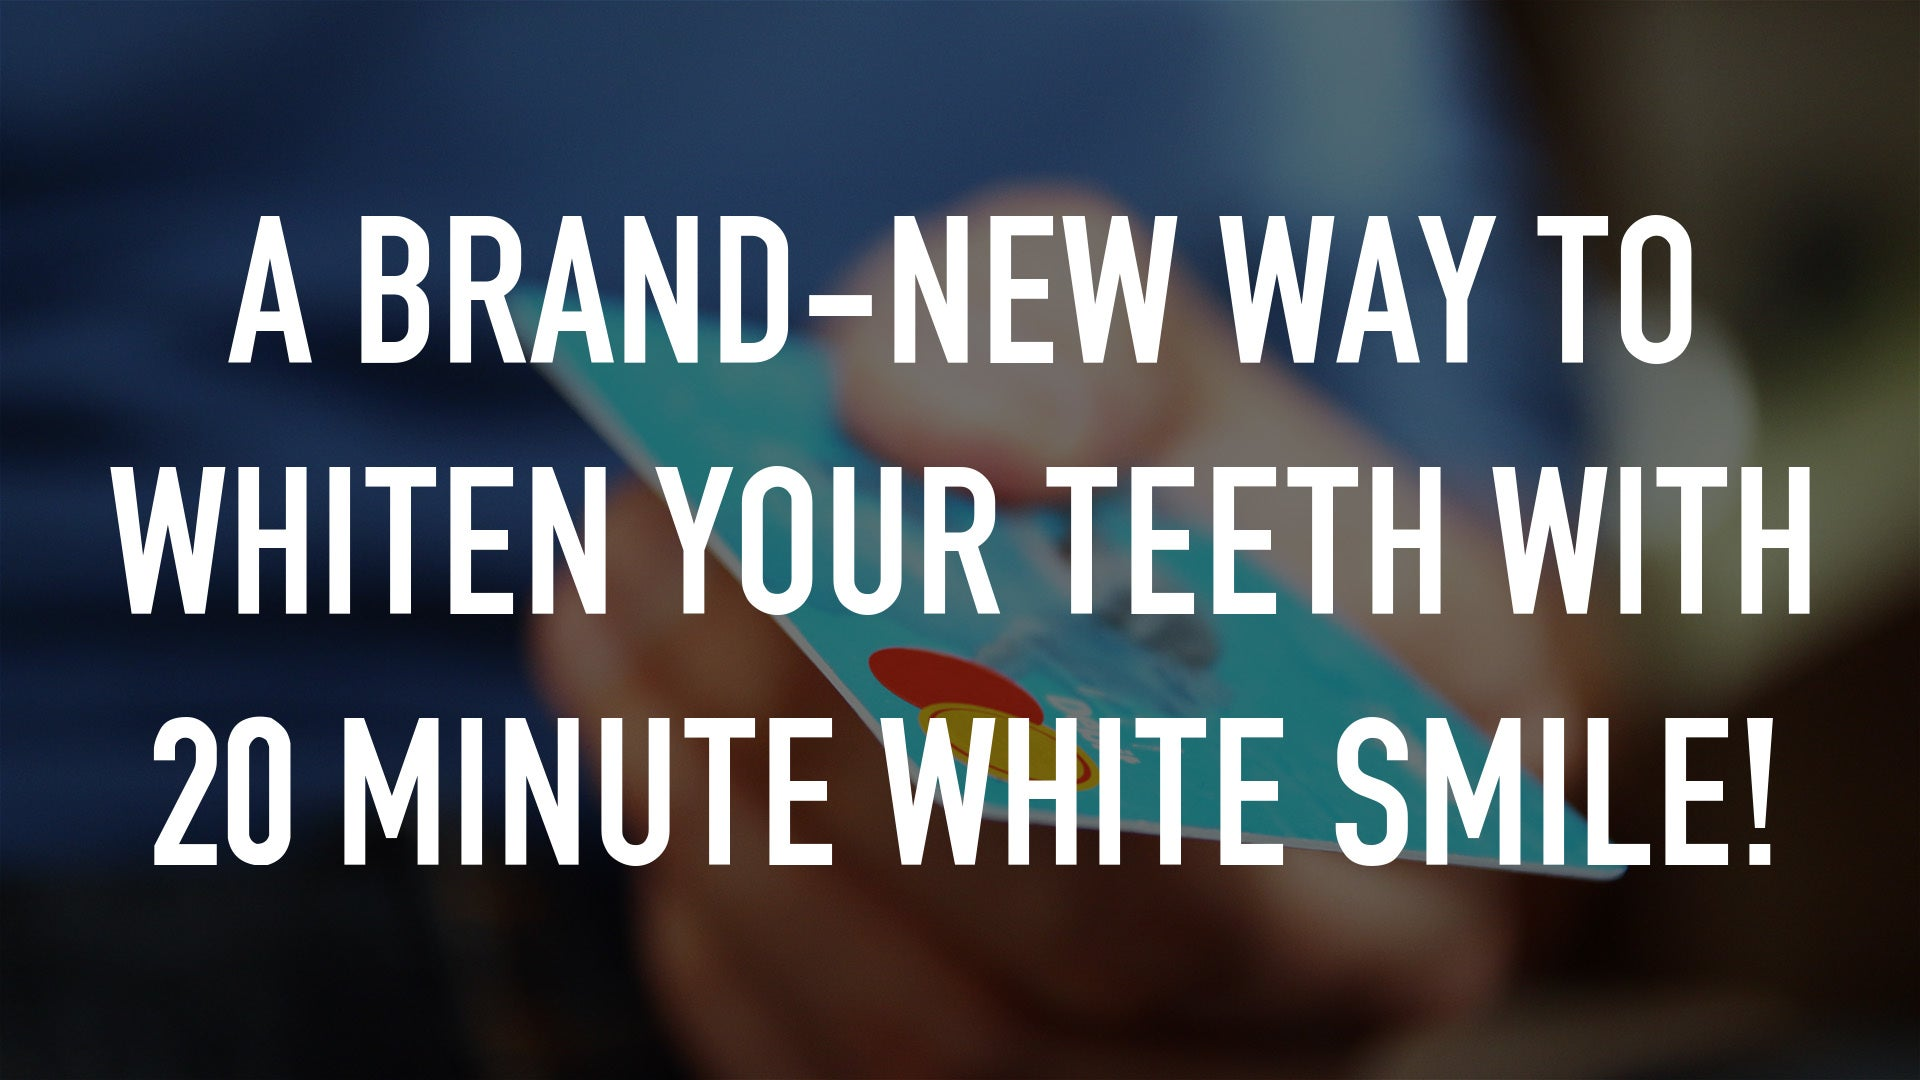 A Brand-New Way to Whiten Your Teeth with 20 Minute White Smile!